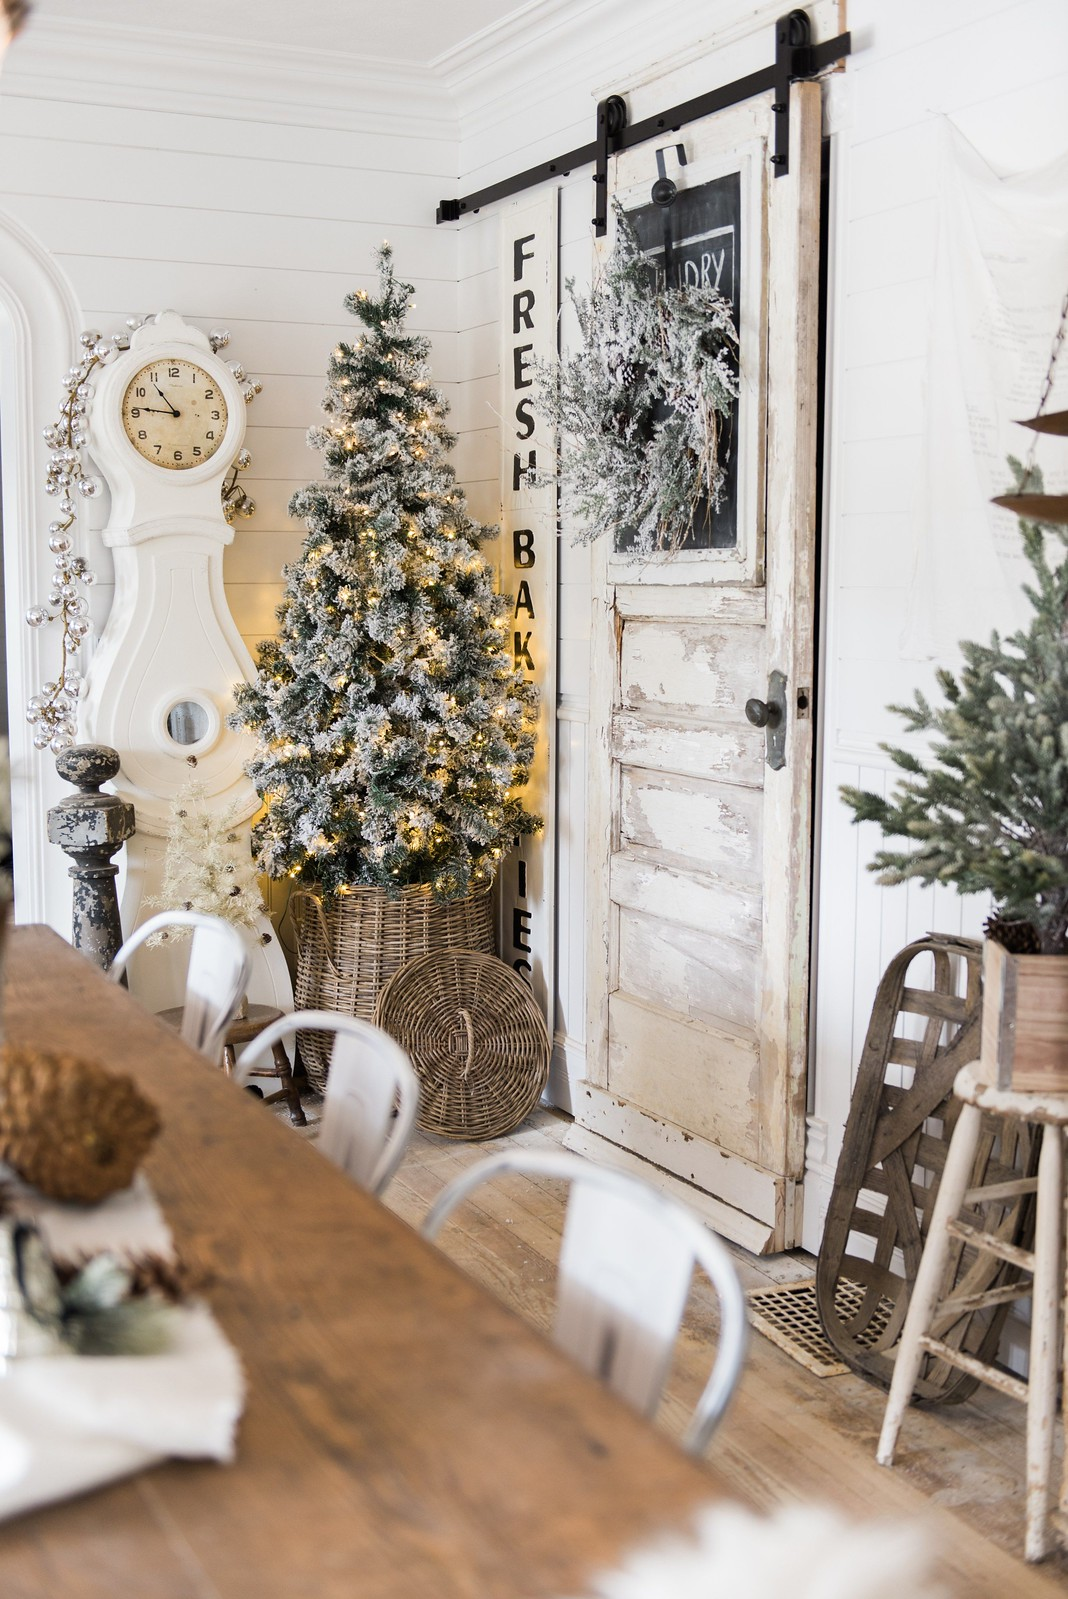 Rustic Glam Farmhouse Christmas Dining Room Decorations Best Holiday Decor